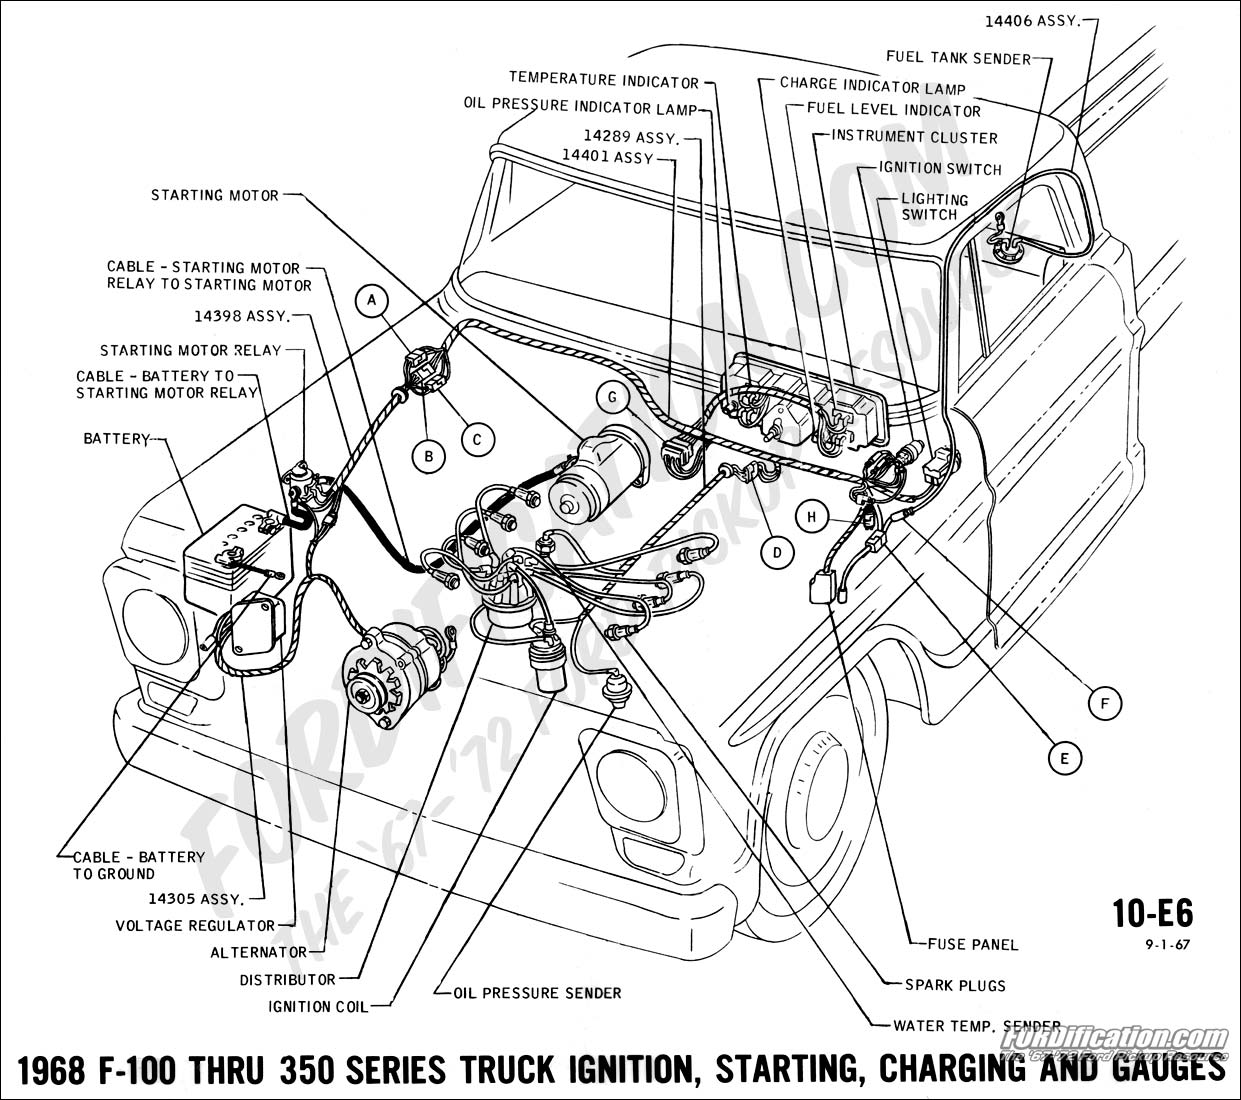 ford truck technical drawings and schematics section h wiring1968 f 100 thru f 350 ignition, starting, charging and gauges